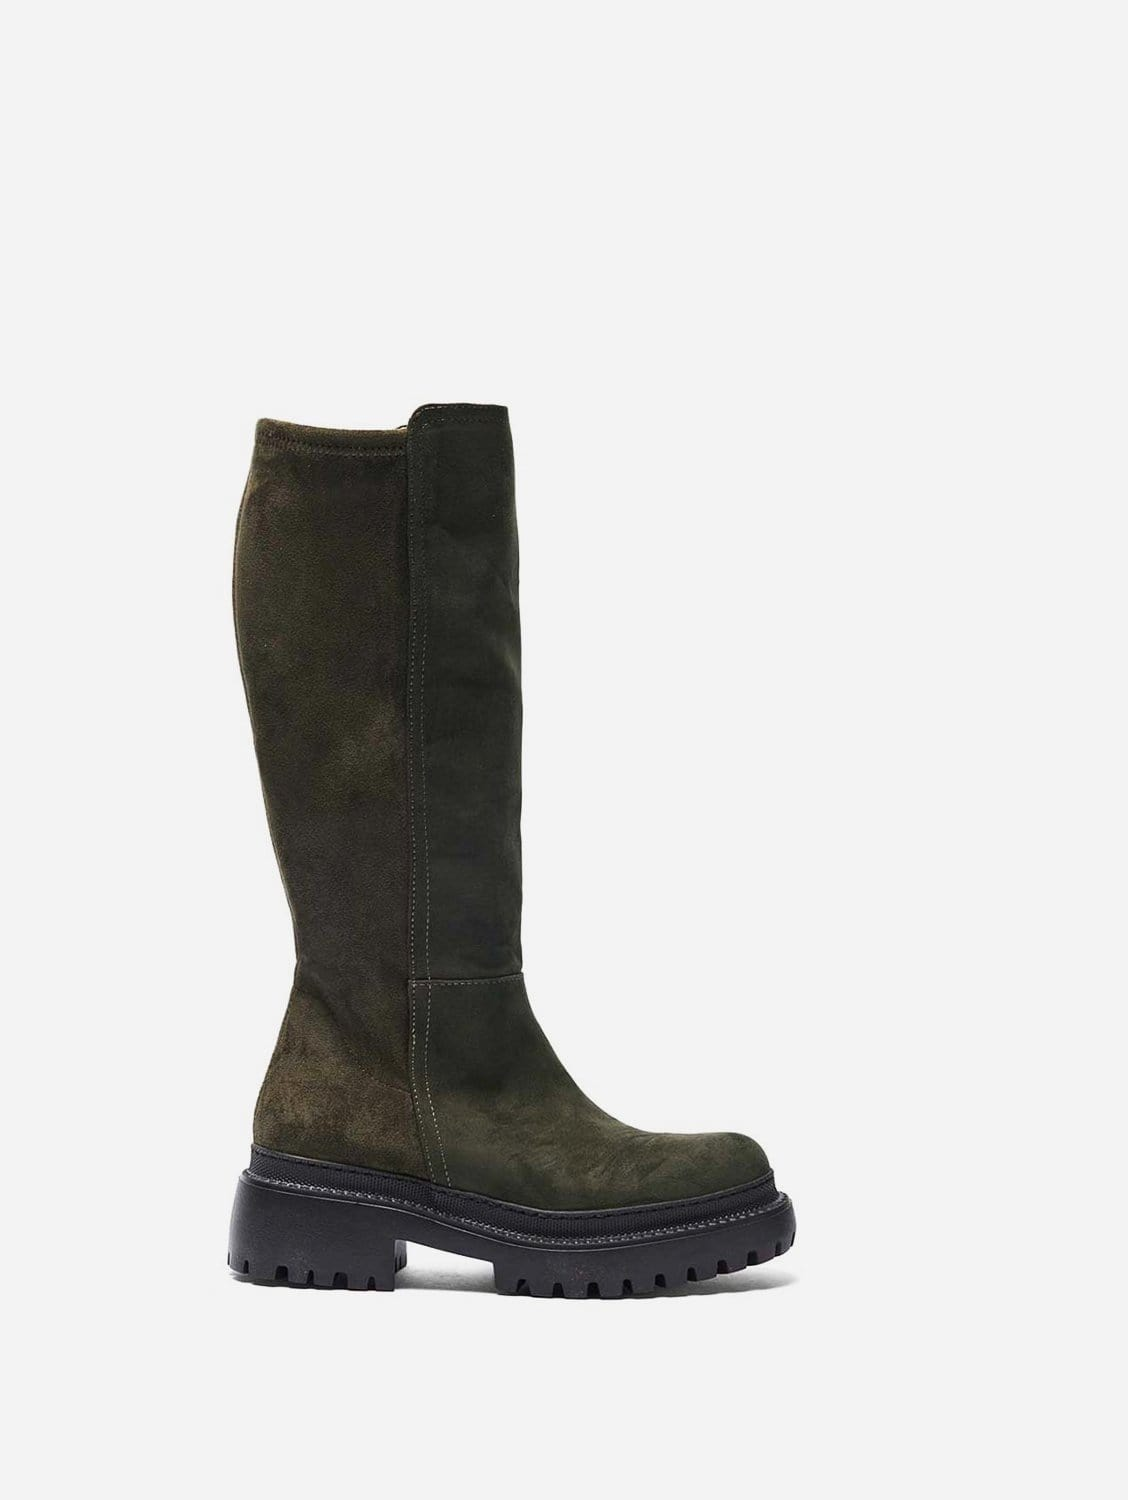 Laila Recycled Polyester Vegan Suede Winter Boots   Khaki